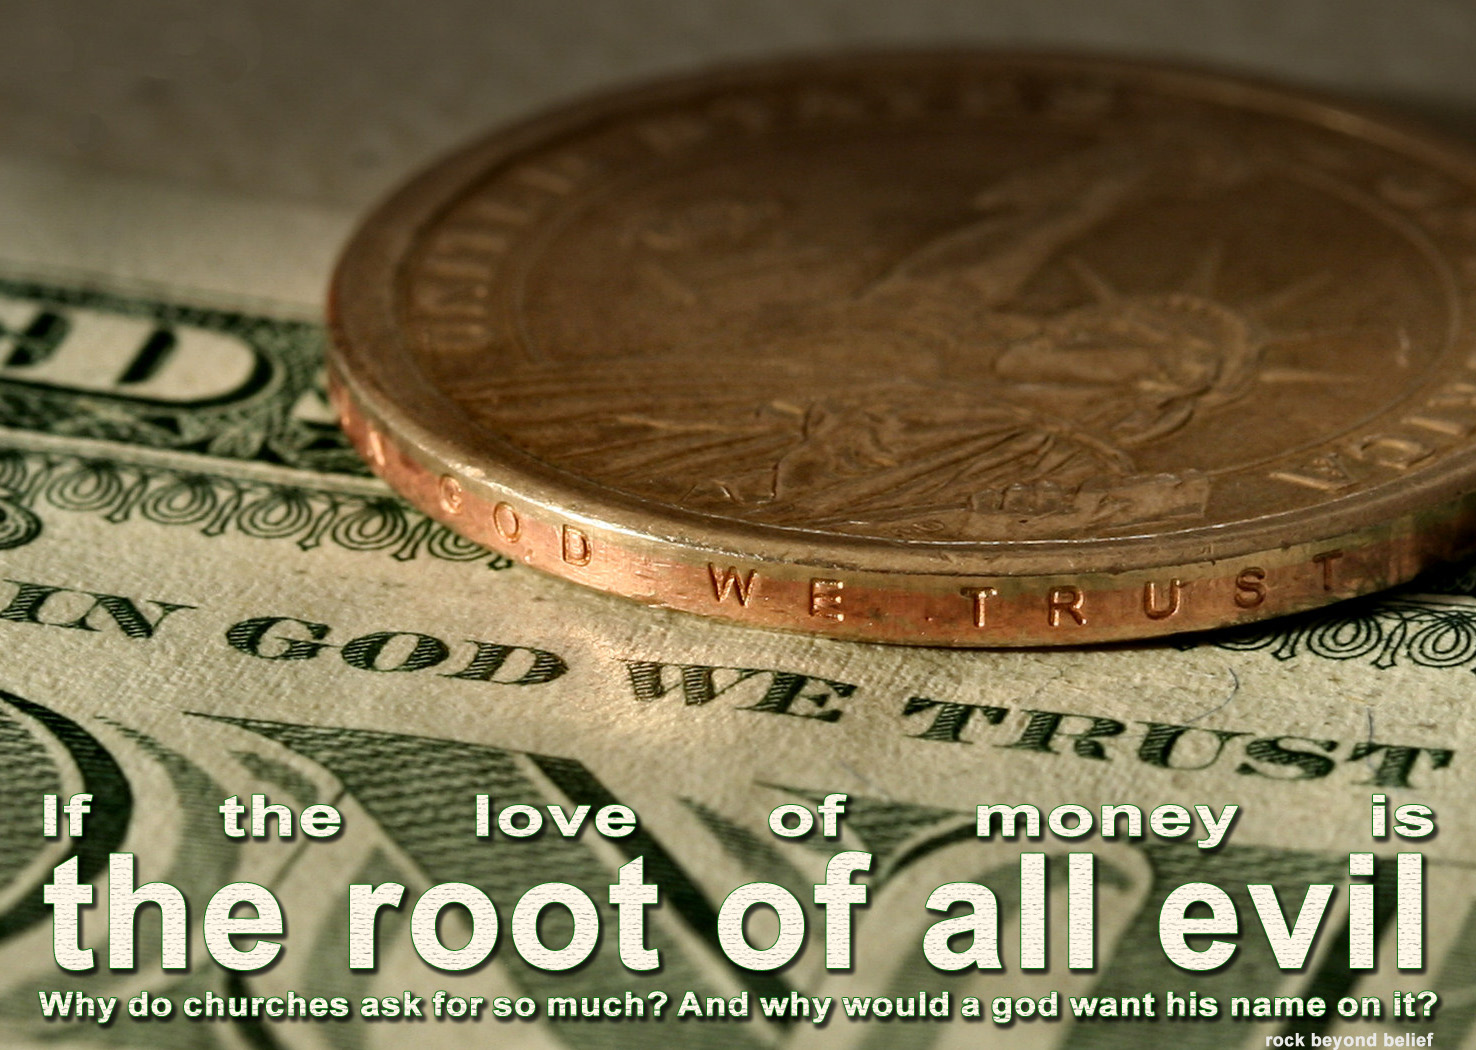 essay on the love of money is the root of all evil